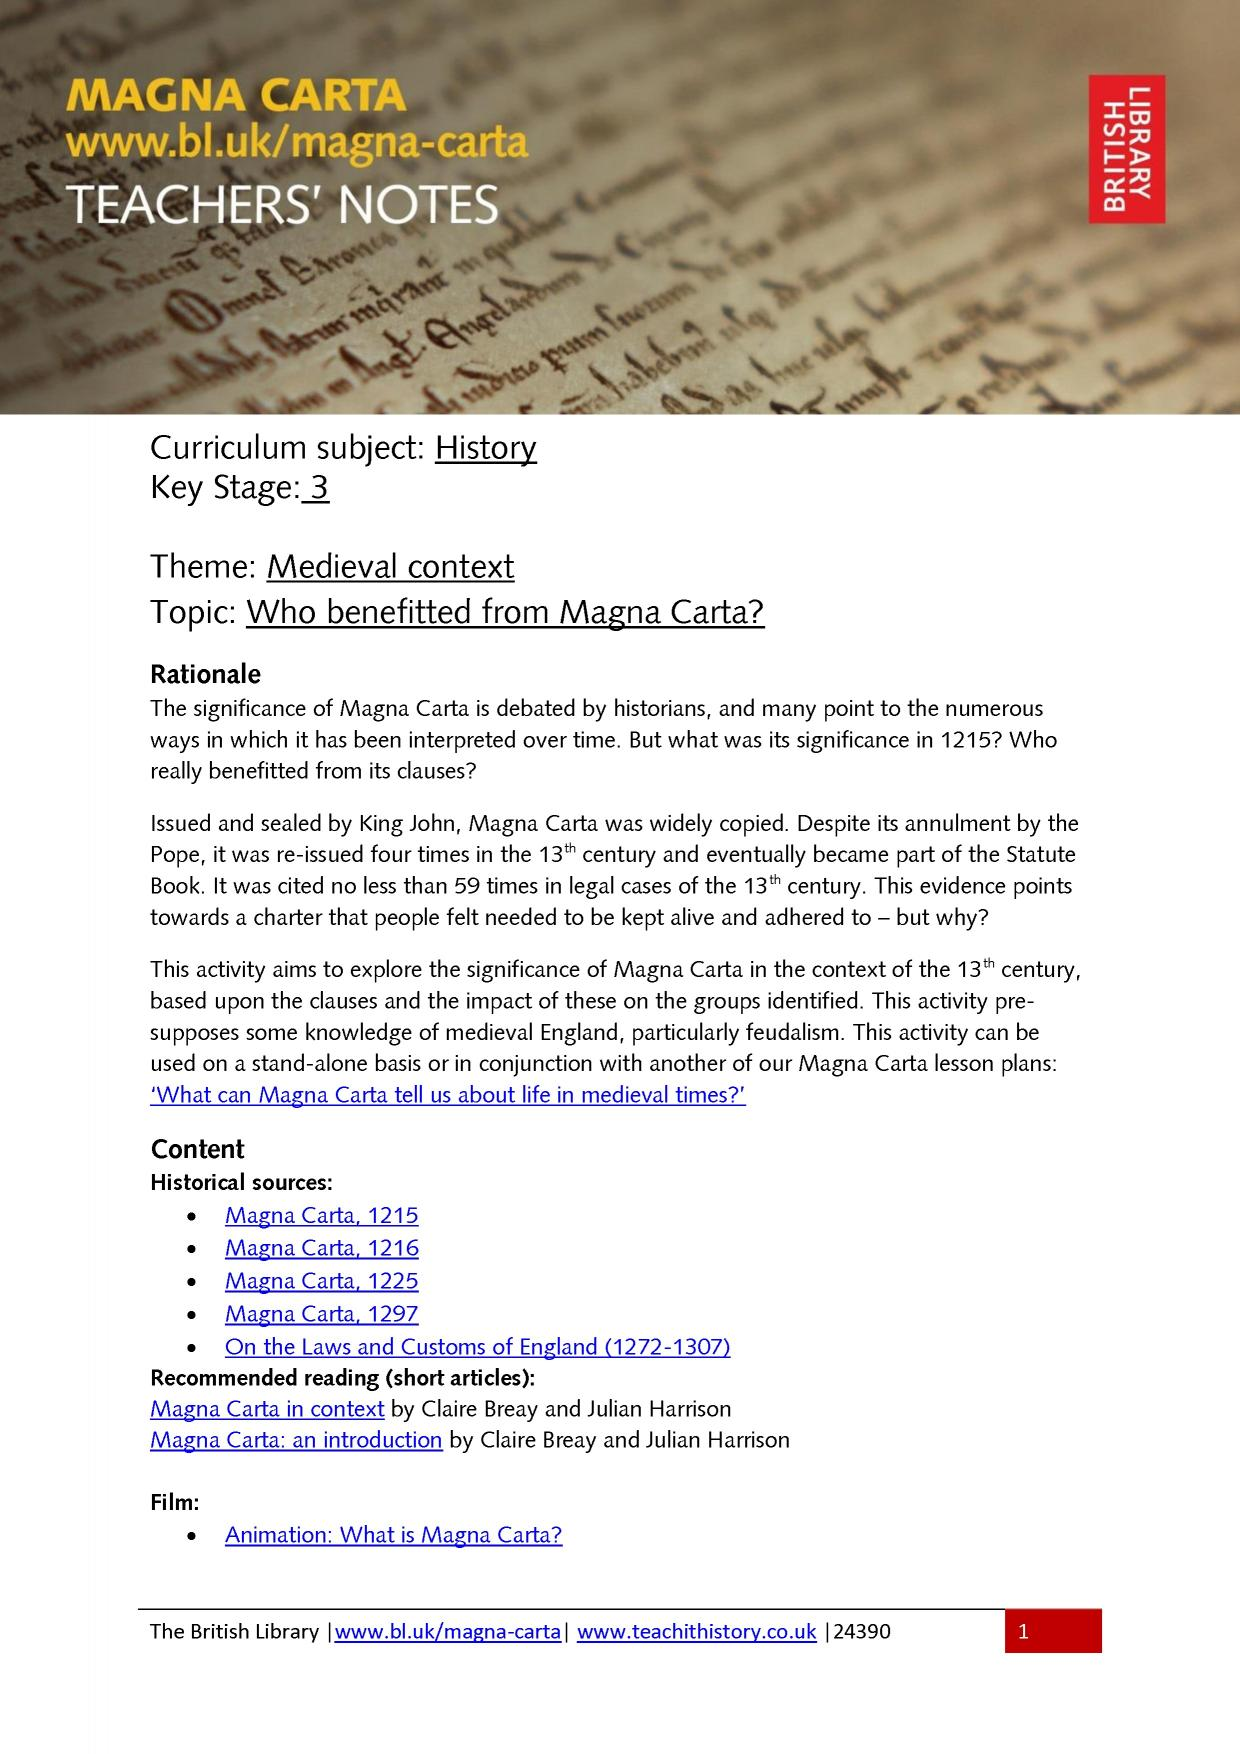 British Library Magna Carta Resources